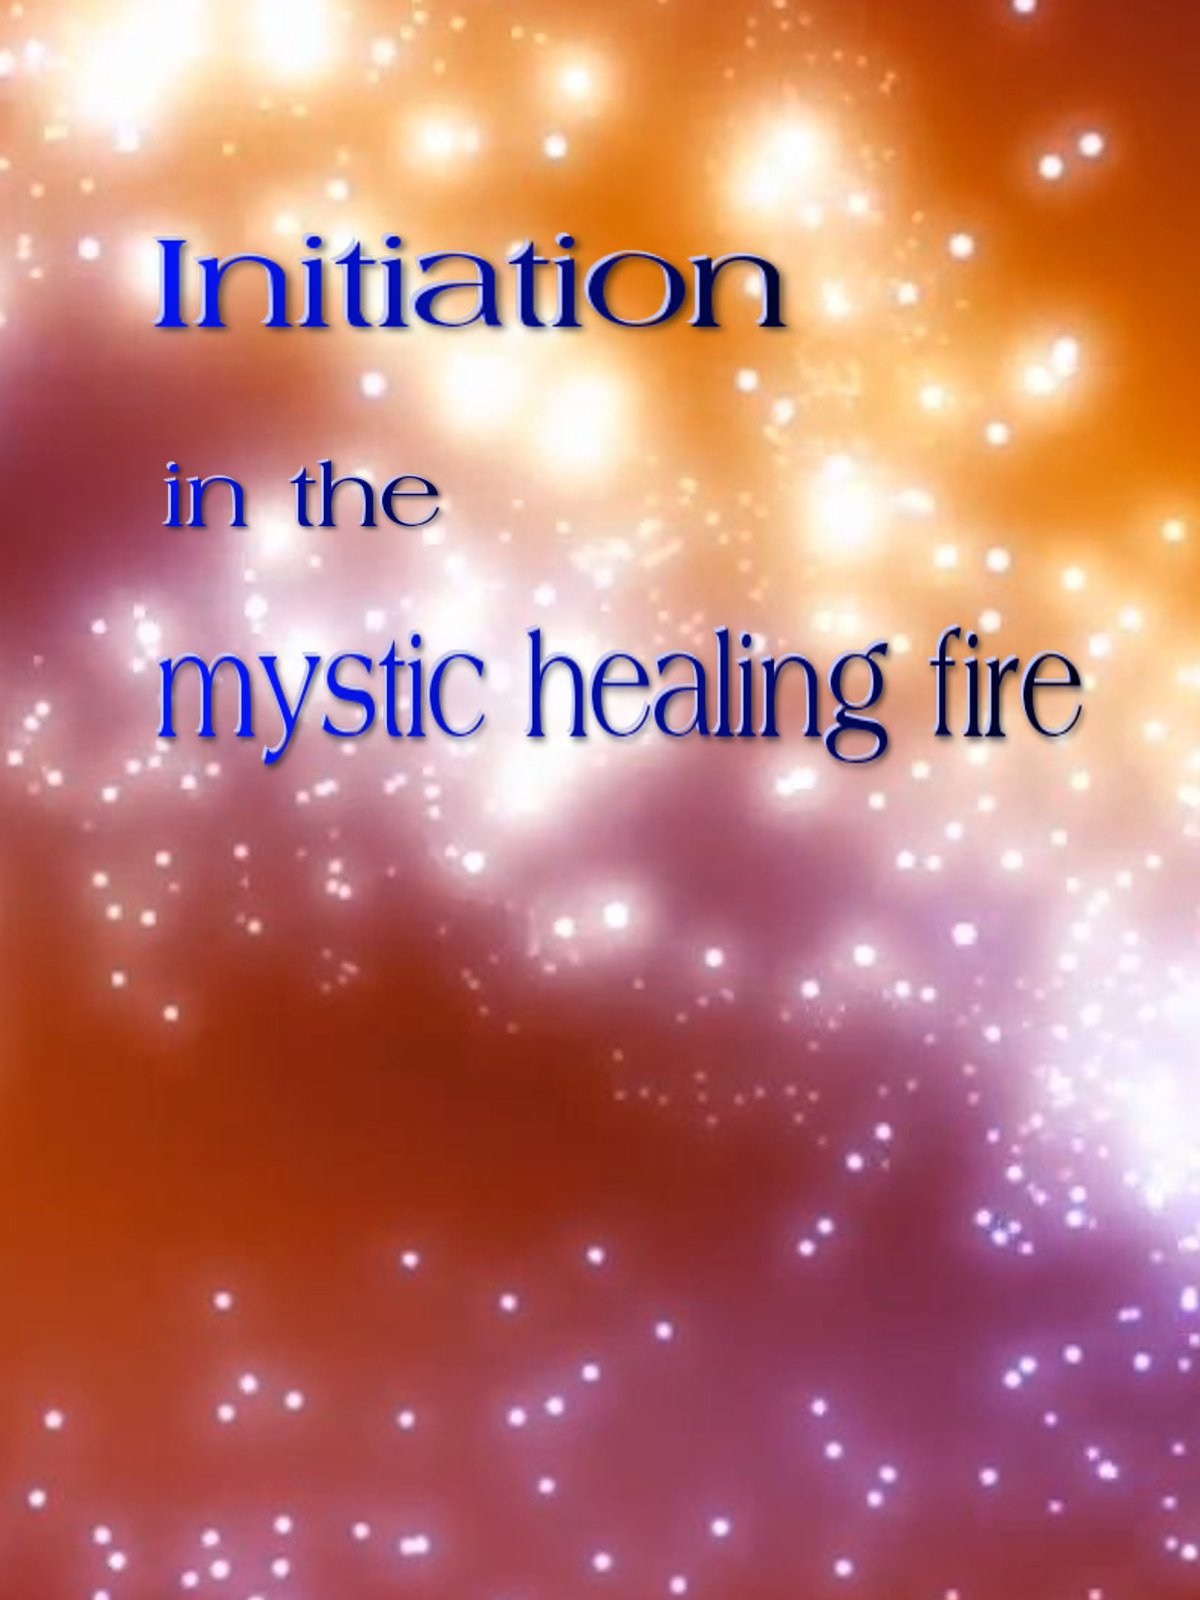 Initiation in the mystic healing fire